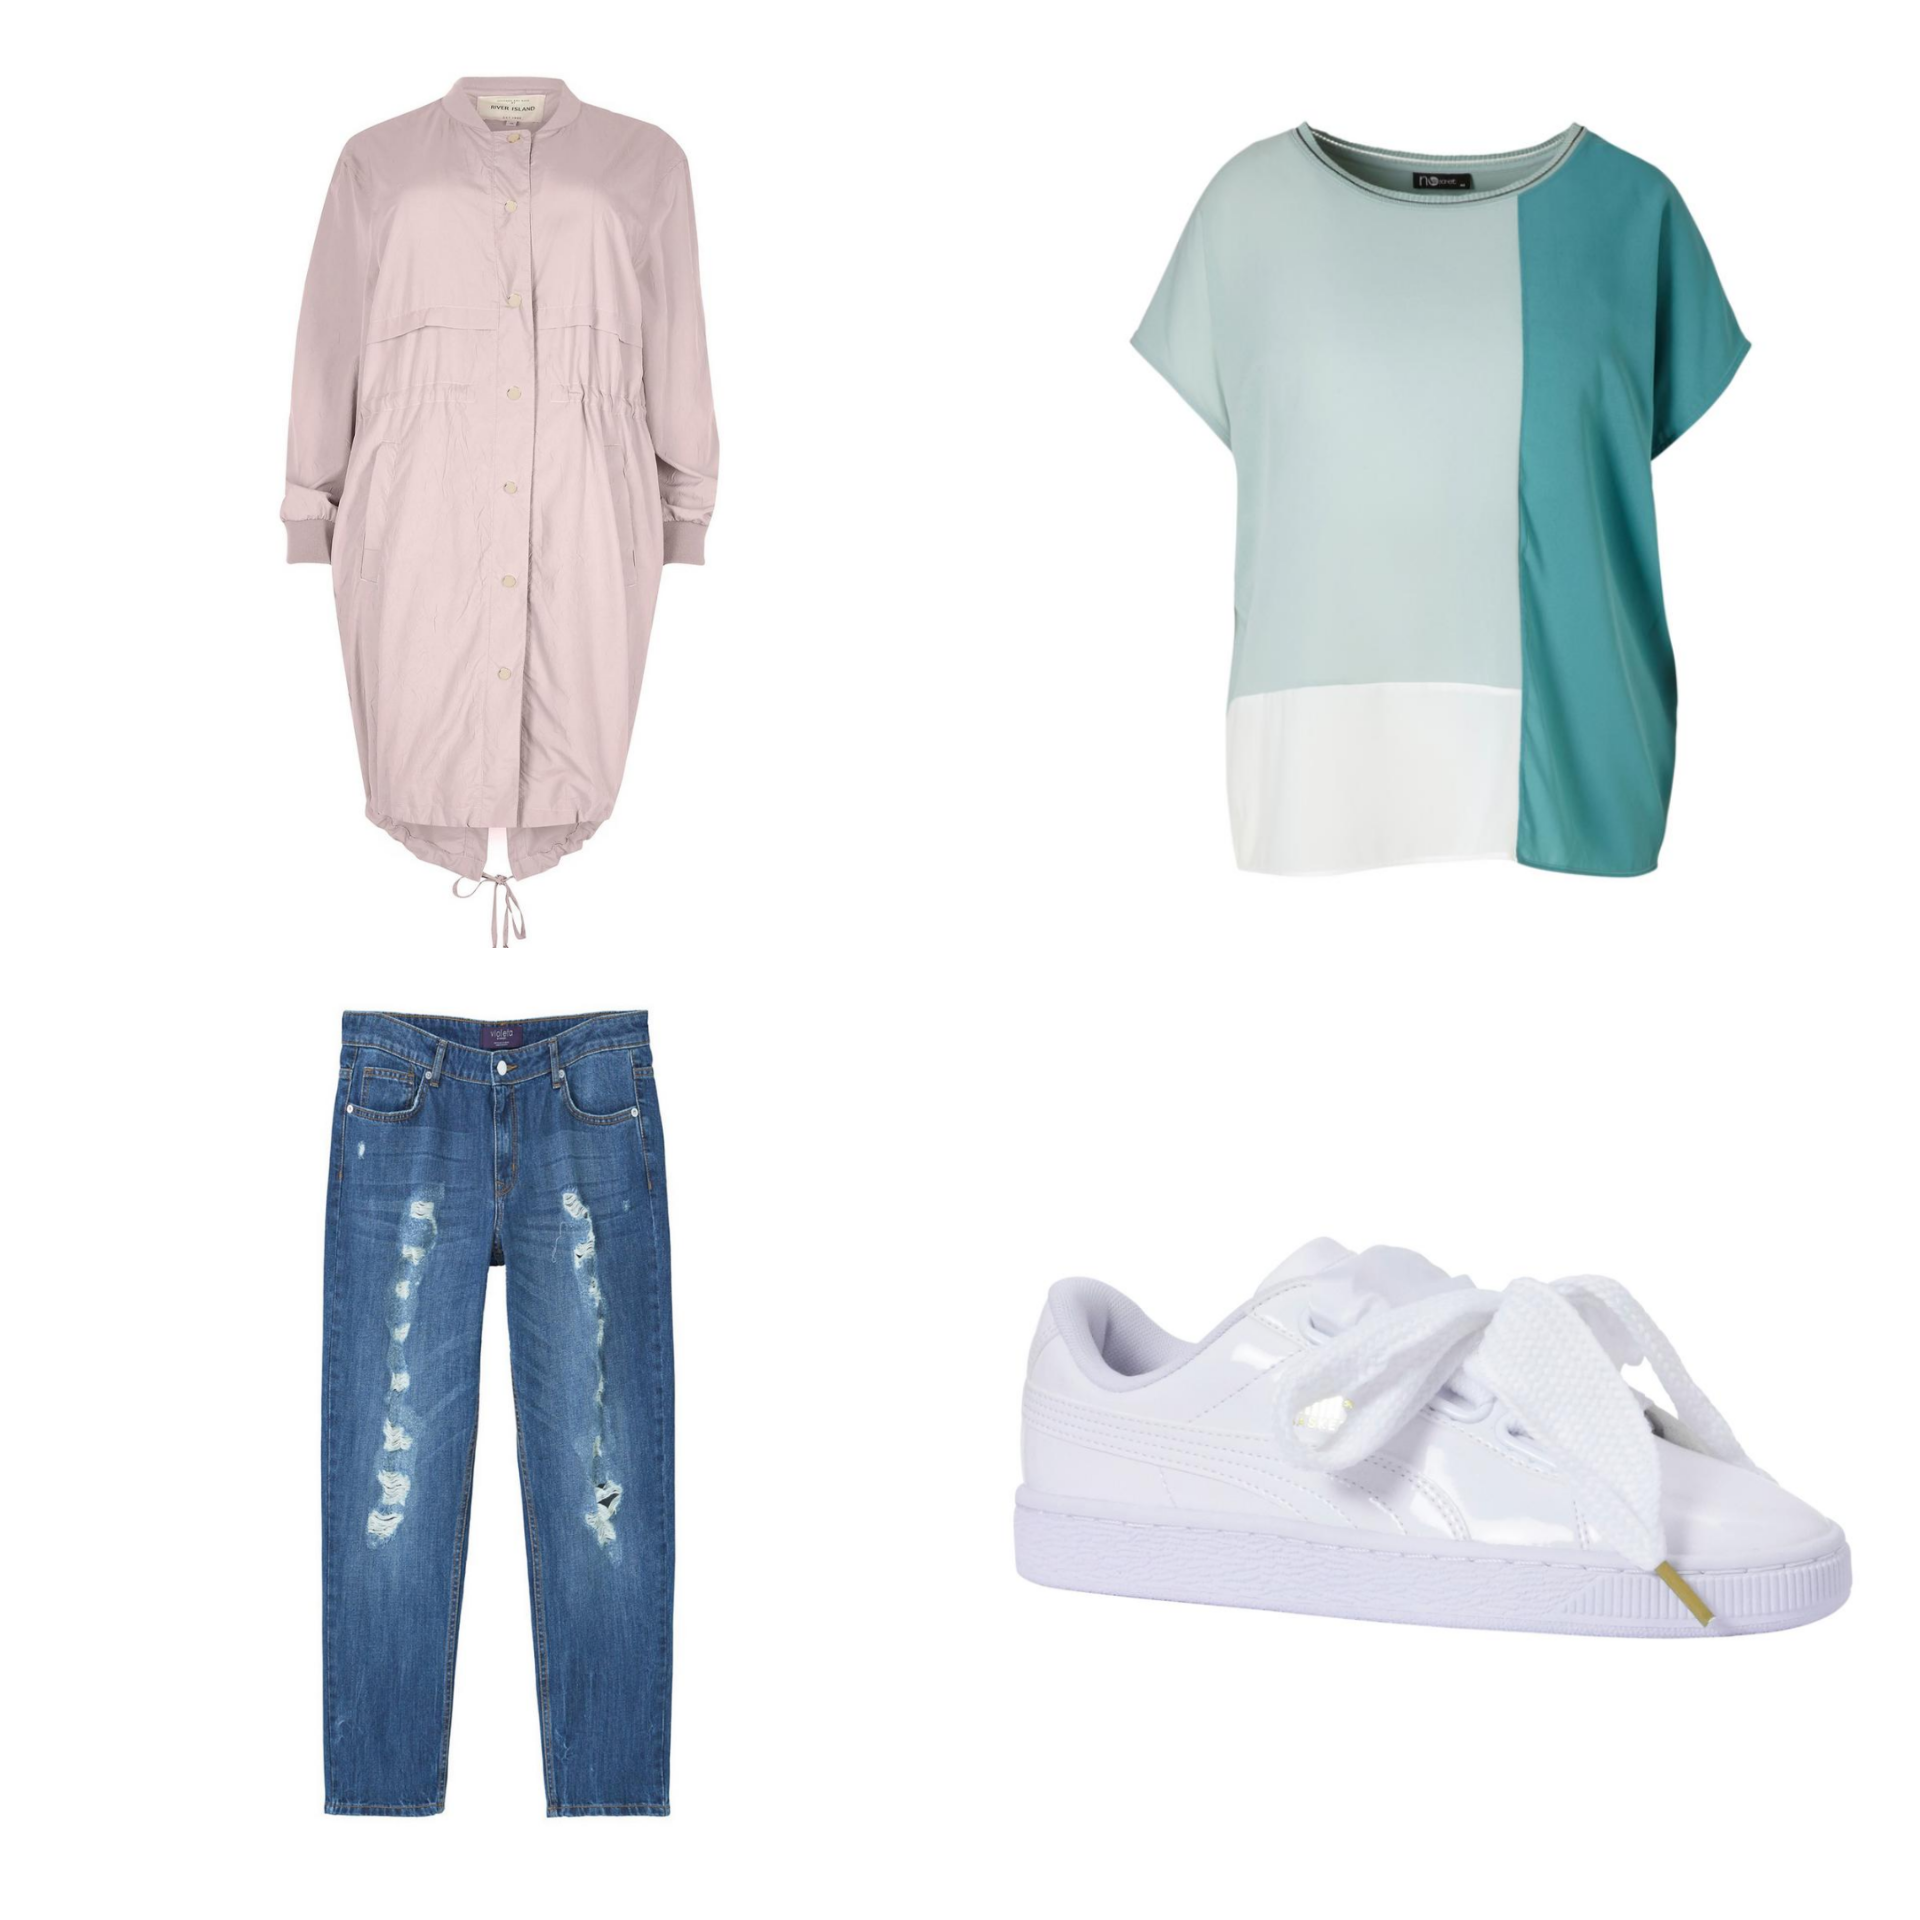 Plus Size Fashion Friday: Casual Spring Outfits